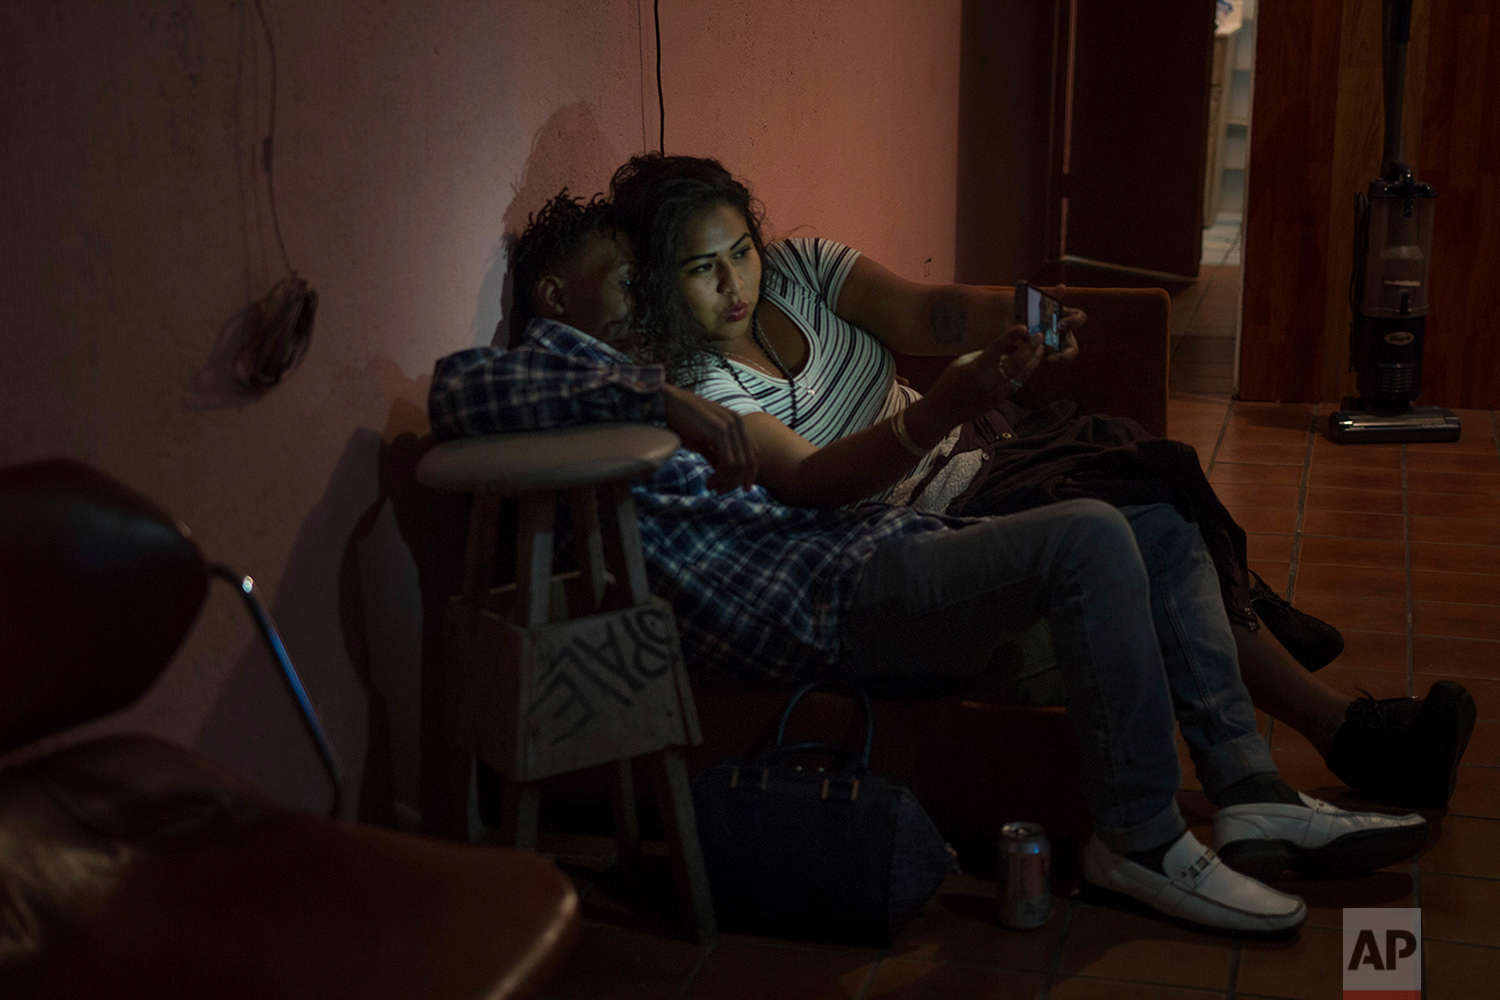 Adriana,from Mexico, and Etienne, from Haiti, take a selfie during a party in Tijuana, Mexico, Feb. 25, 2018. (AP Photo/Emilio Espejel)